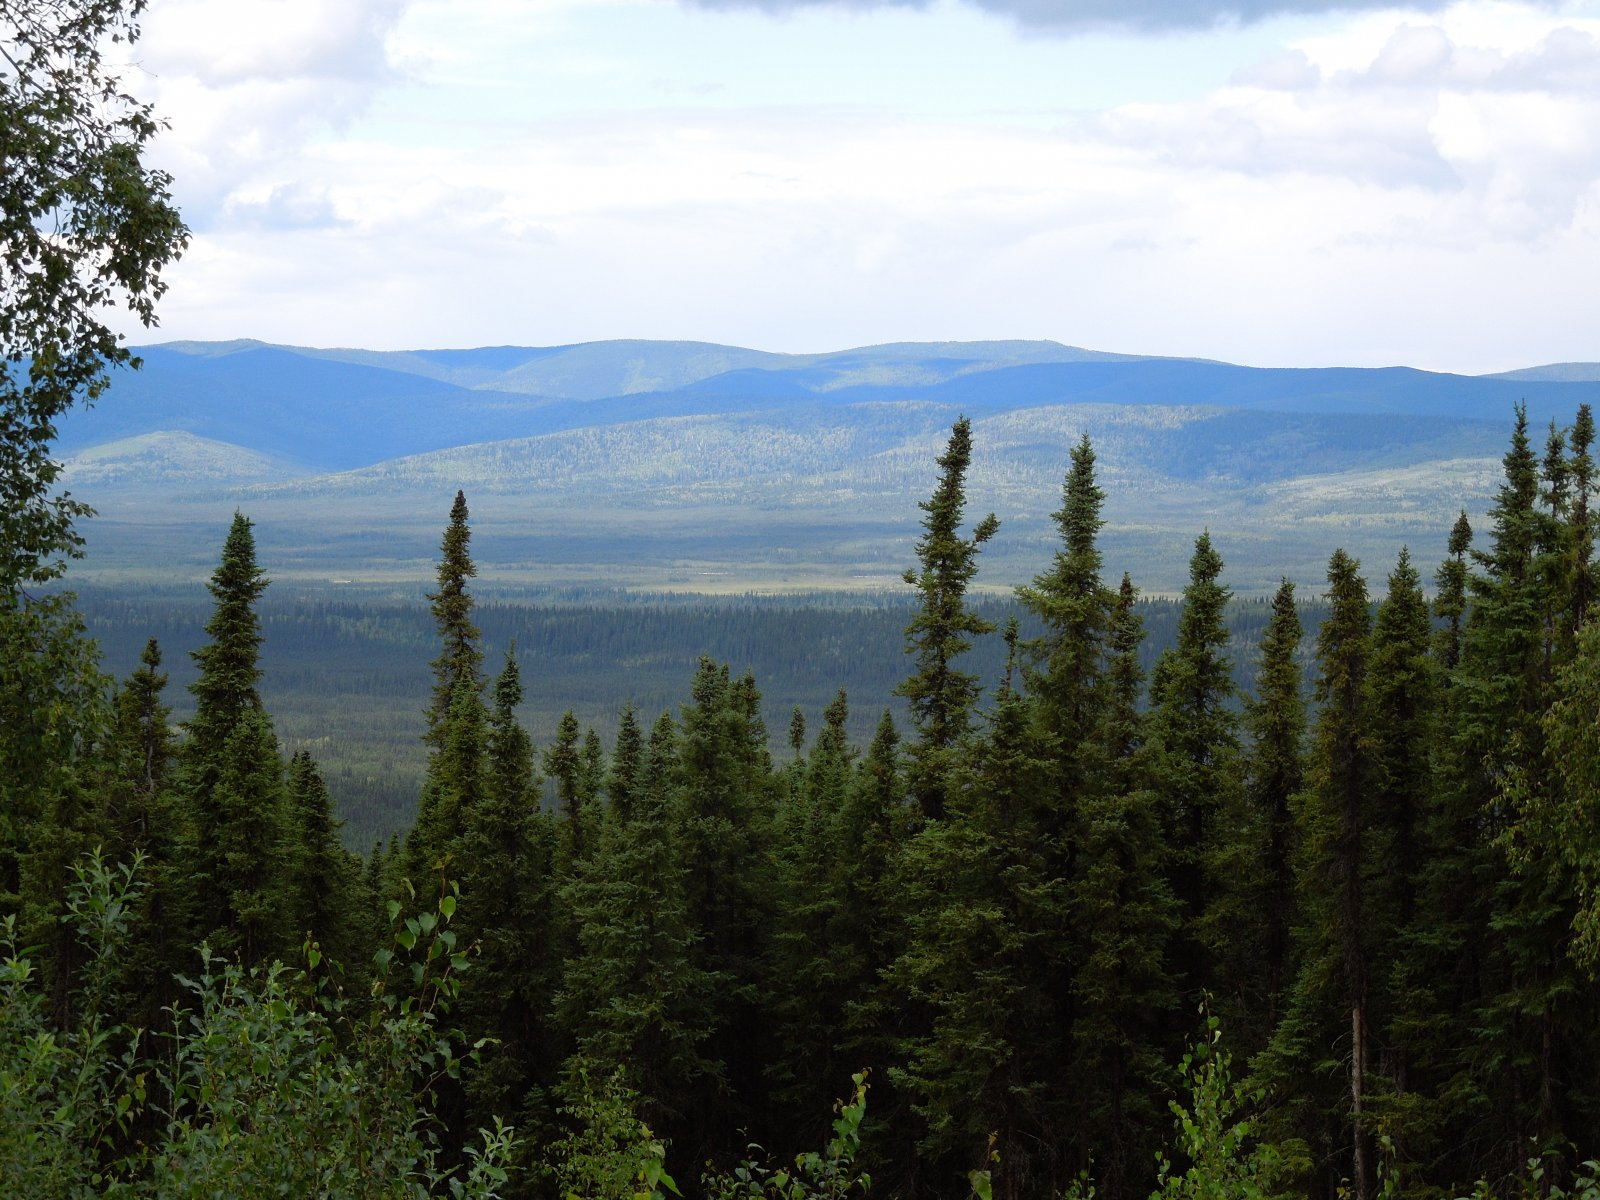 Click image for larger version  Name:Fairbanks 033.jpg Views:49 Size:378.2 KB ID:221292